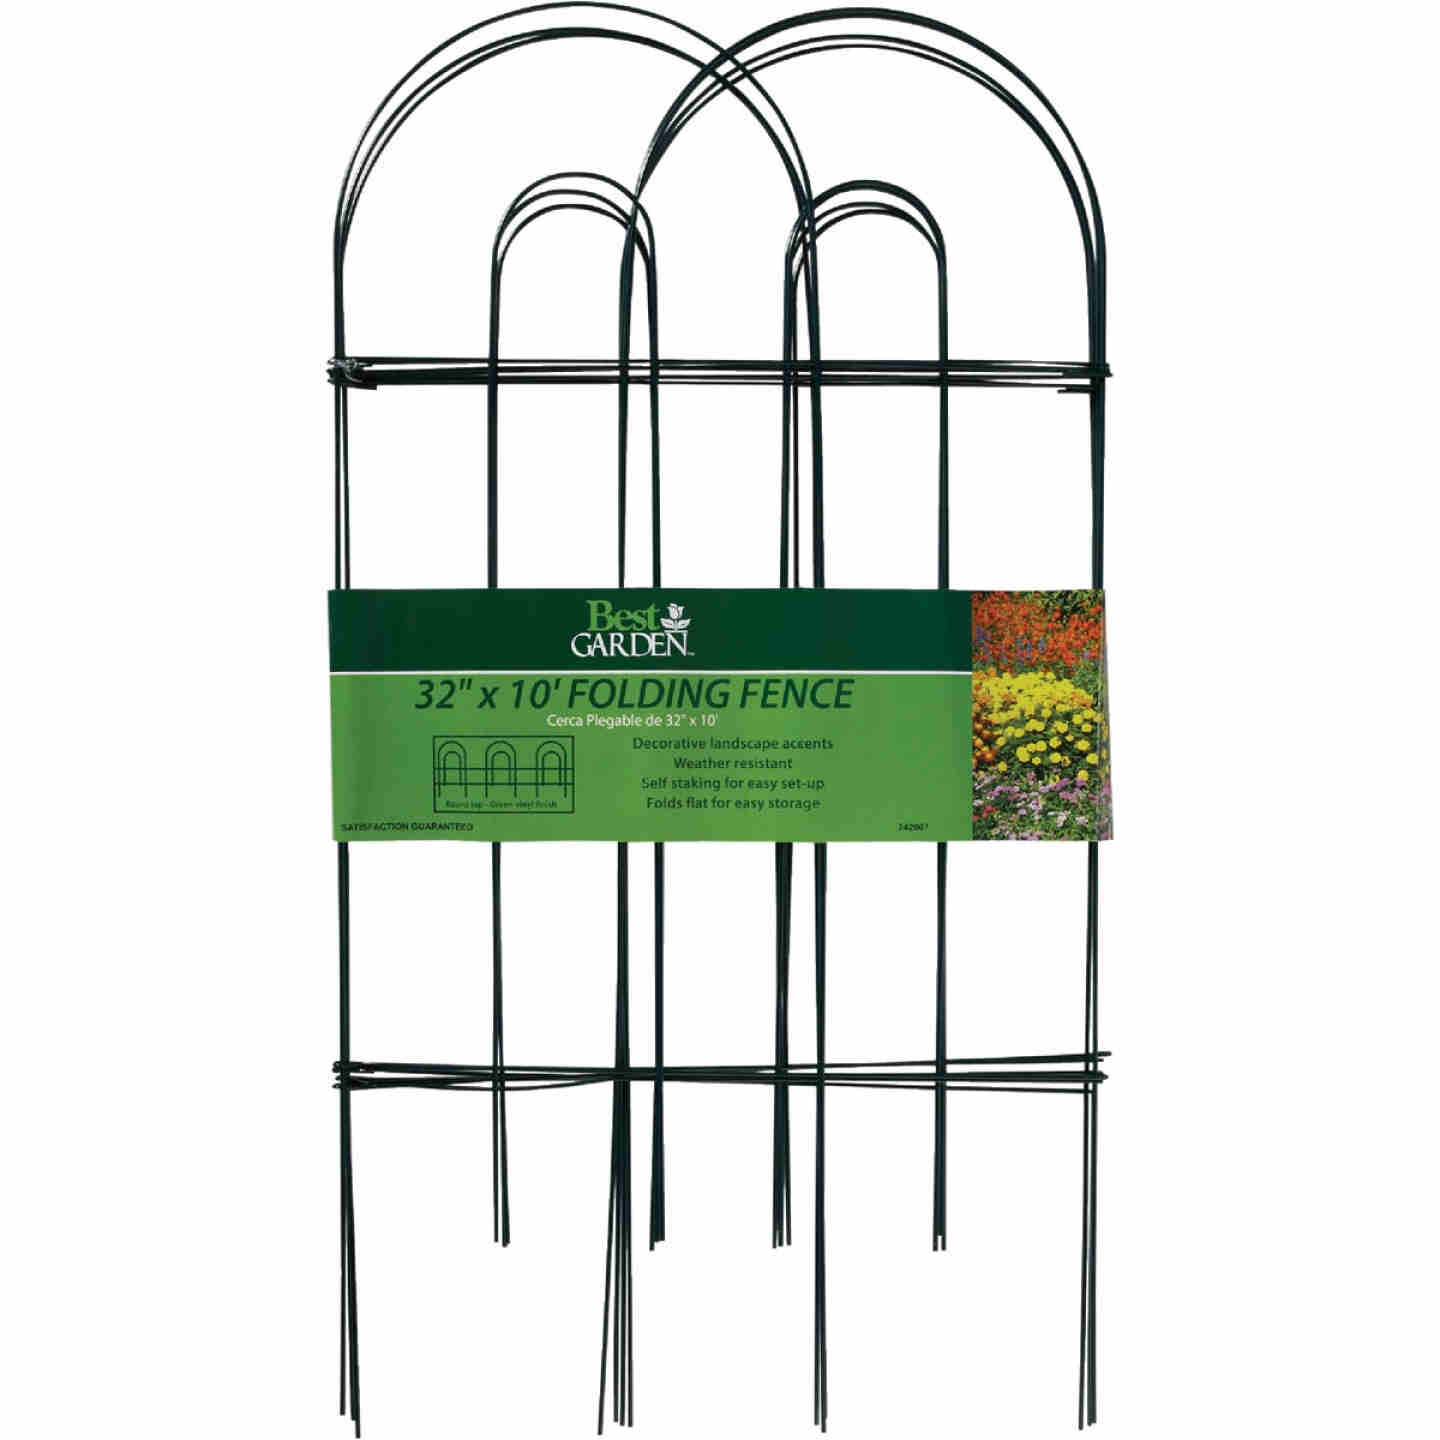 Best Garden 10 Ft. Powder-Coated Green Wire Folding Fence Image 2